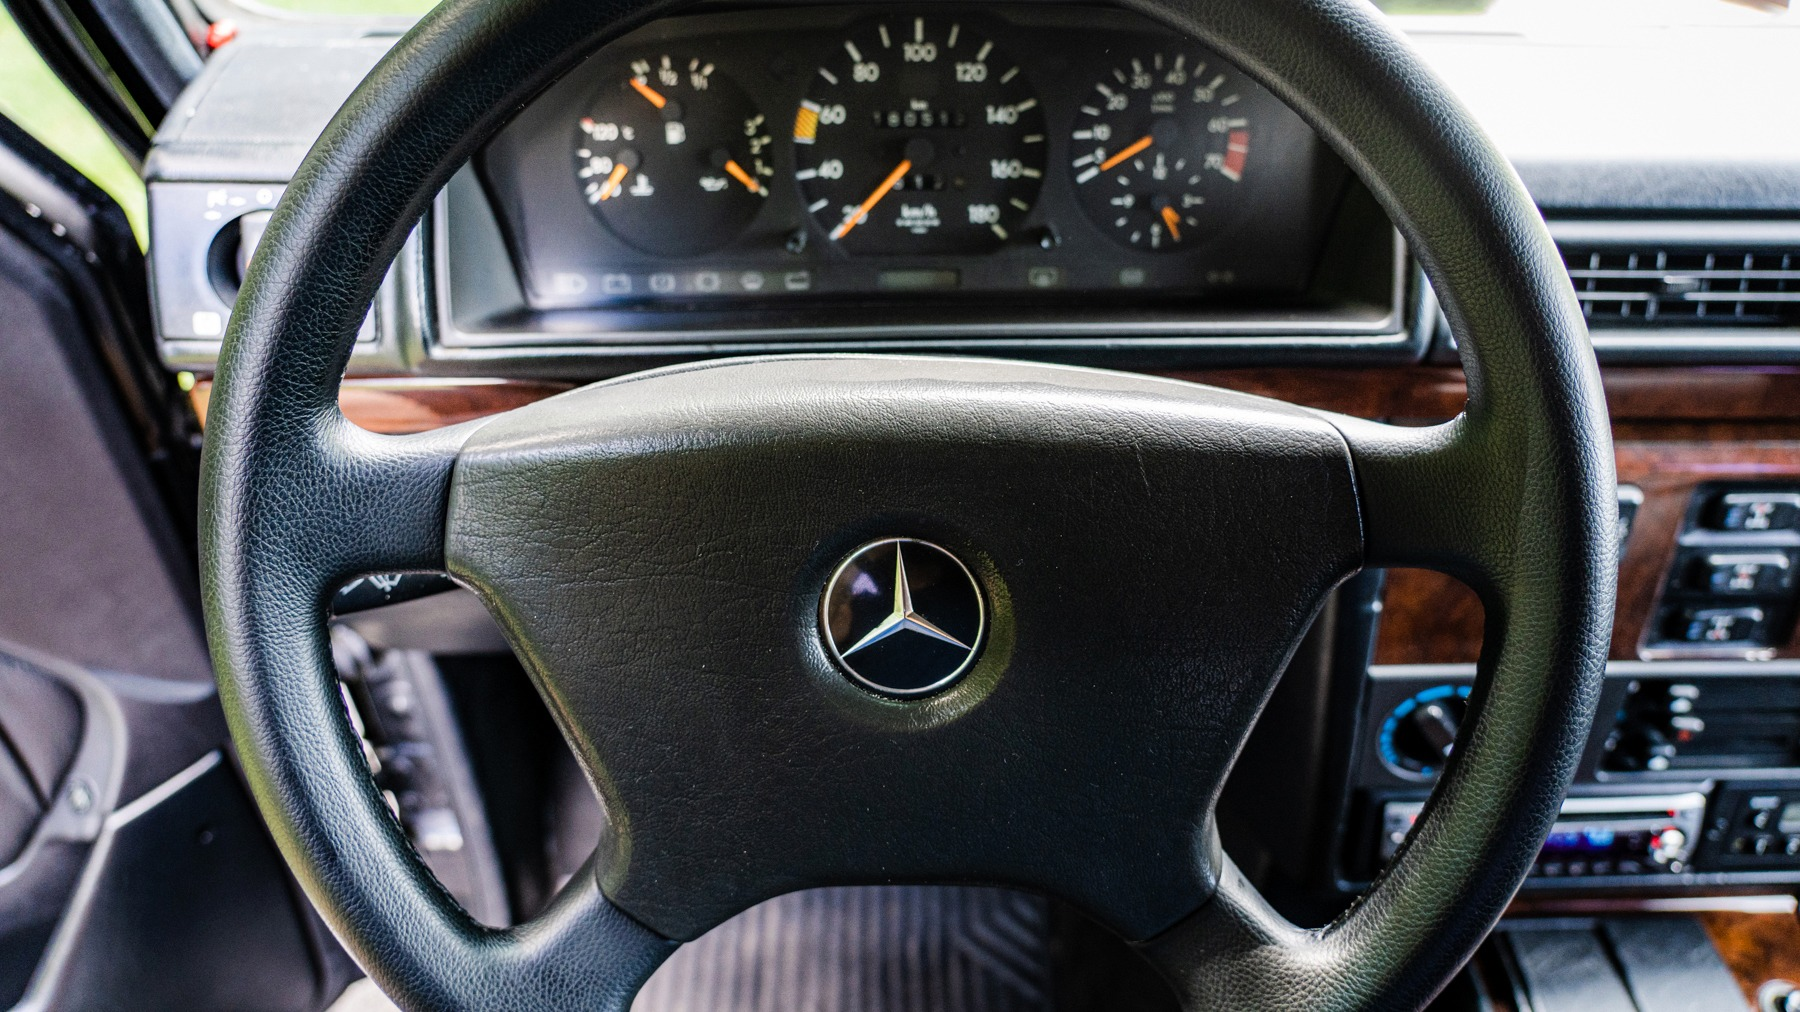 Used 1993 Mercedes-Benz 300GE 3.0L I6 / ALL-WHEEL DRIVE / 5-SPEED MANUAL for sale Sold at Formula Imports in Charlotte NC 28227 29